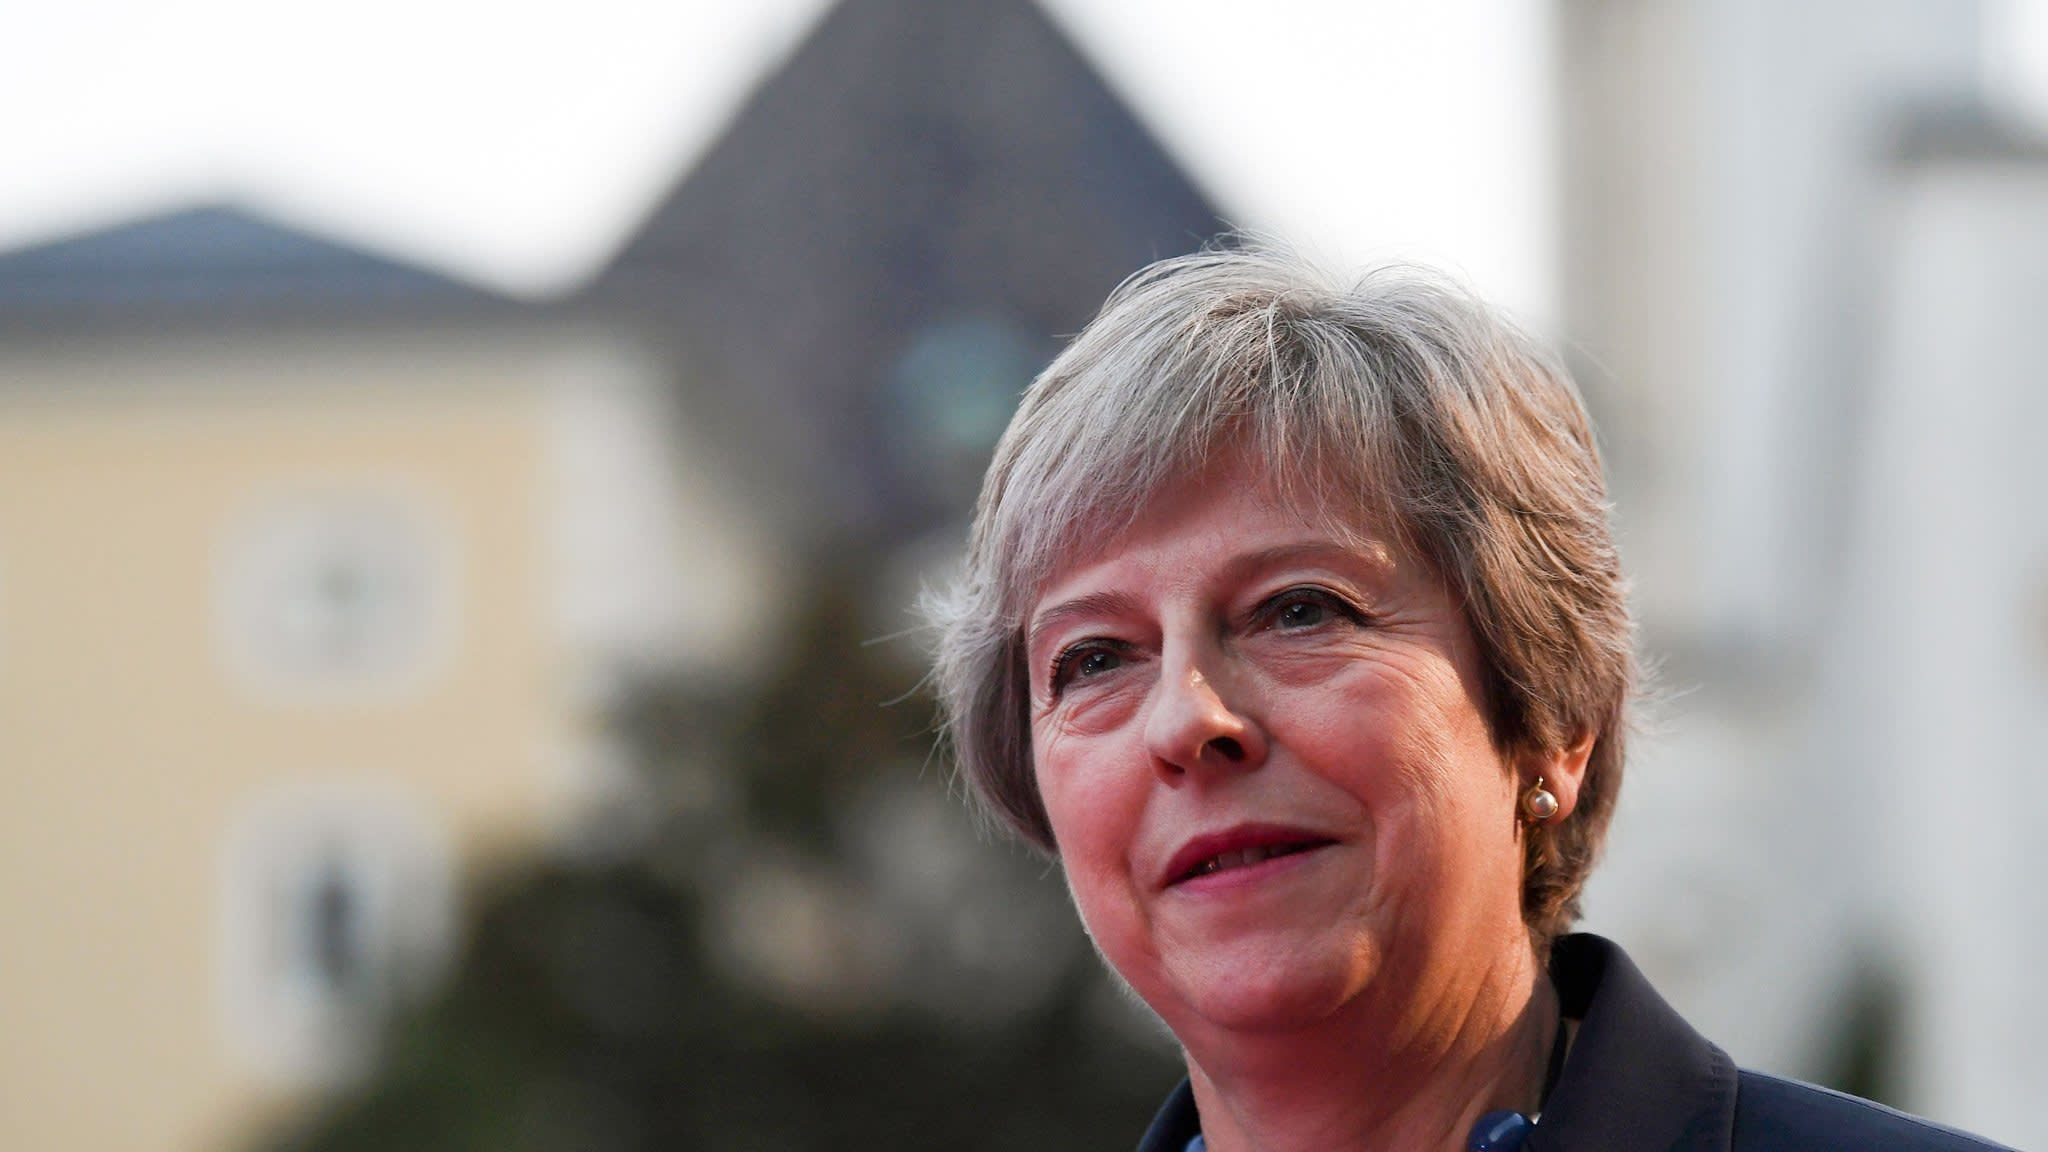 Theresa May rejects 'not credible' EU plan on N Ireland